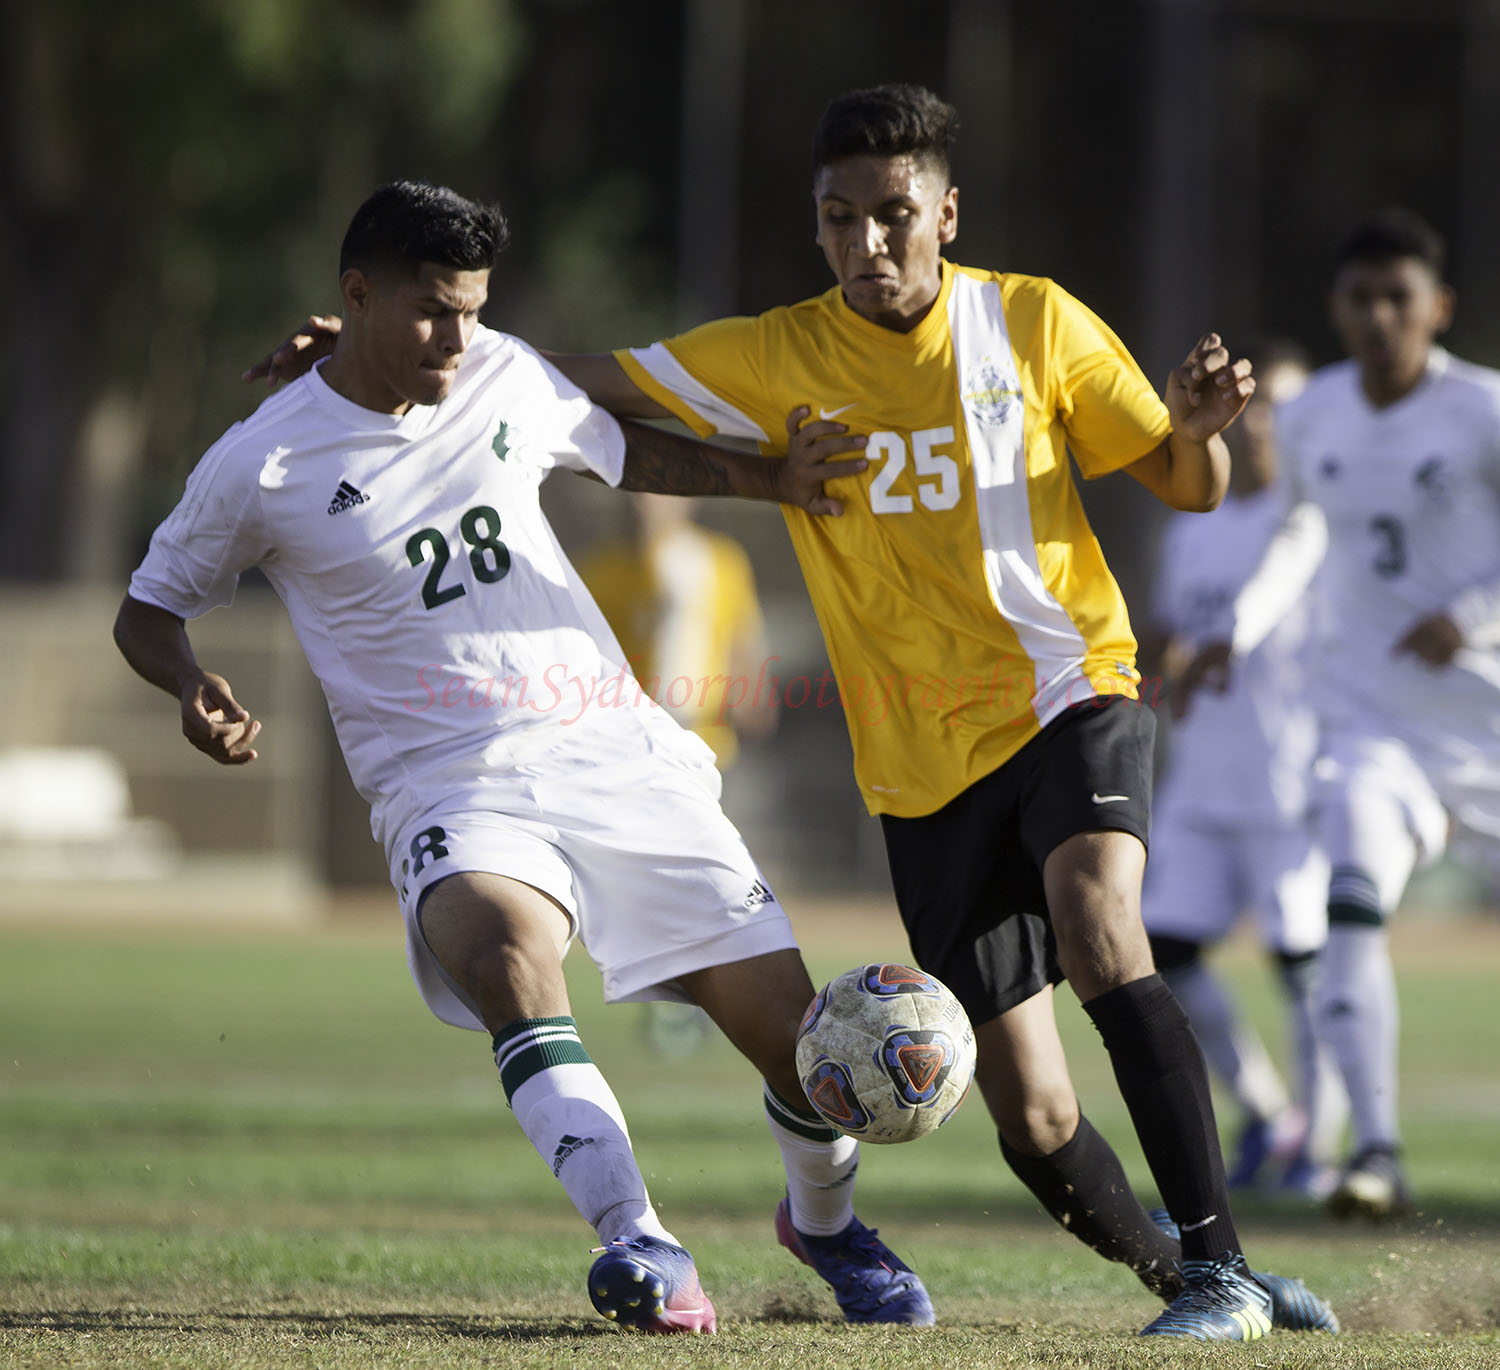 Escudero and Vargas Score to Send Rustlers to 2nd Round